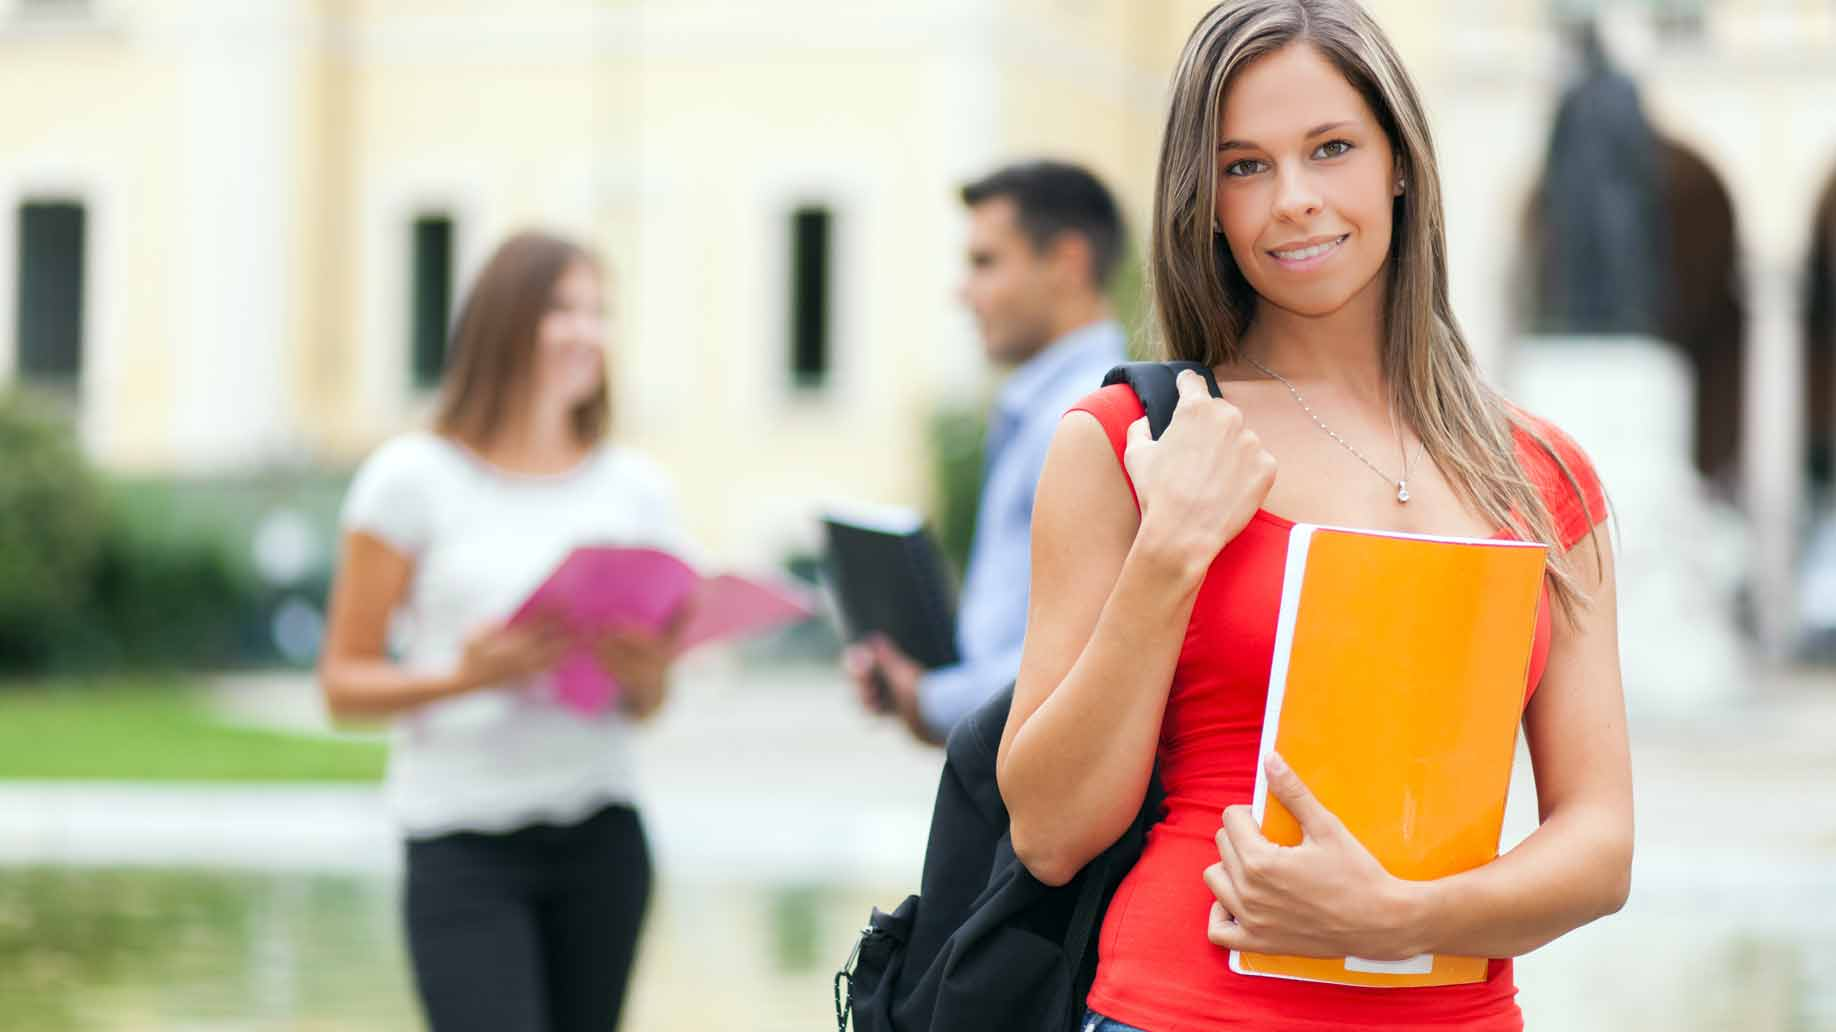 woman attending grad school classes